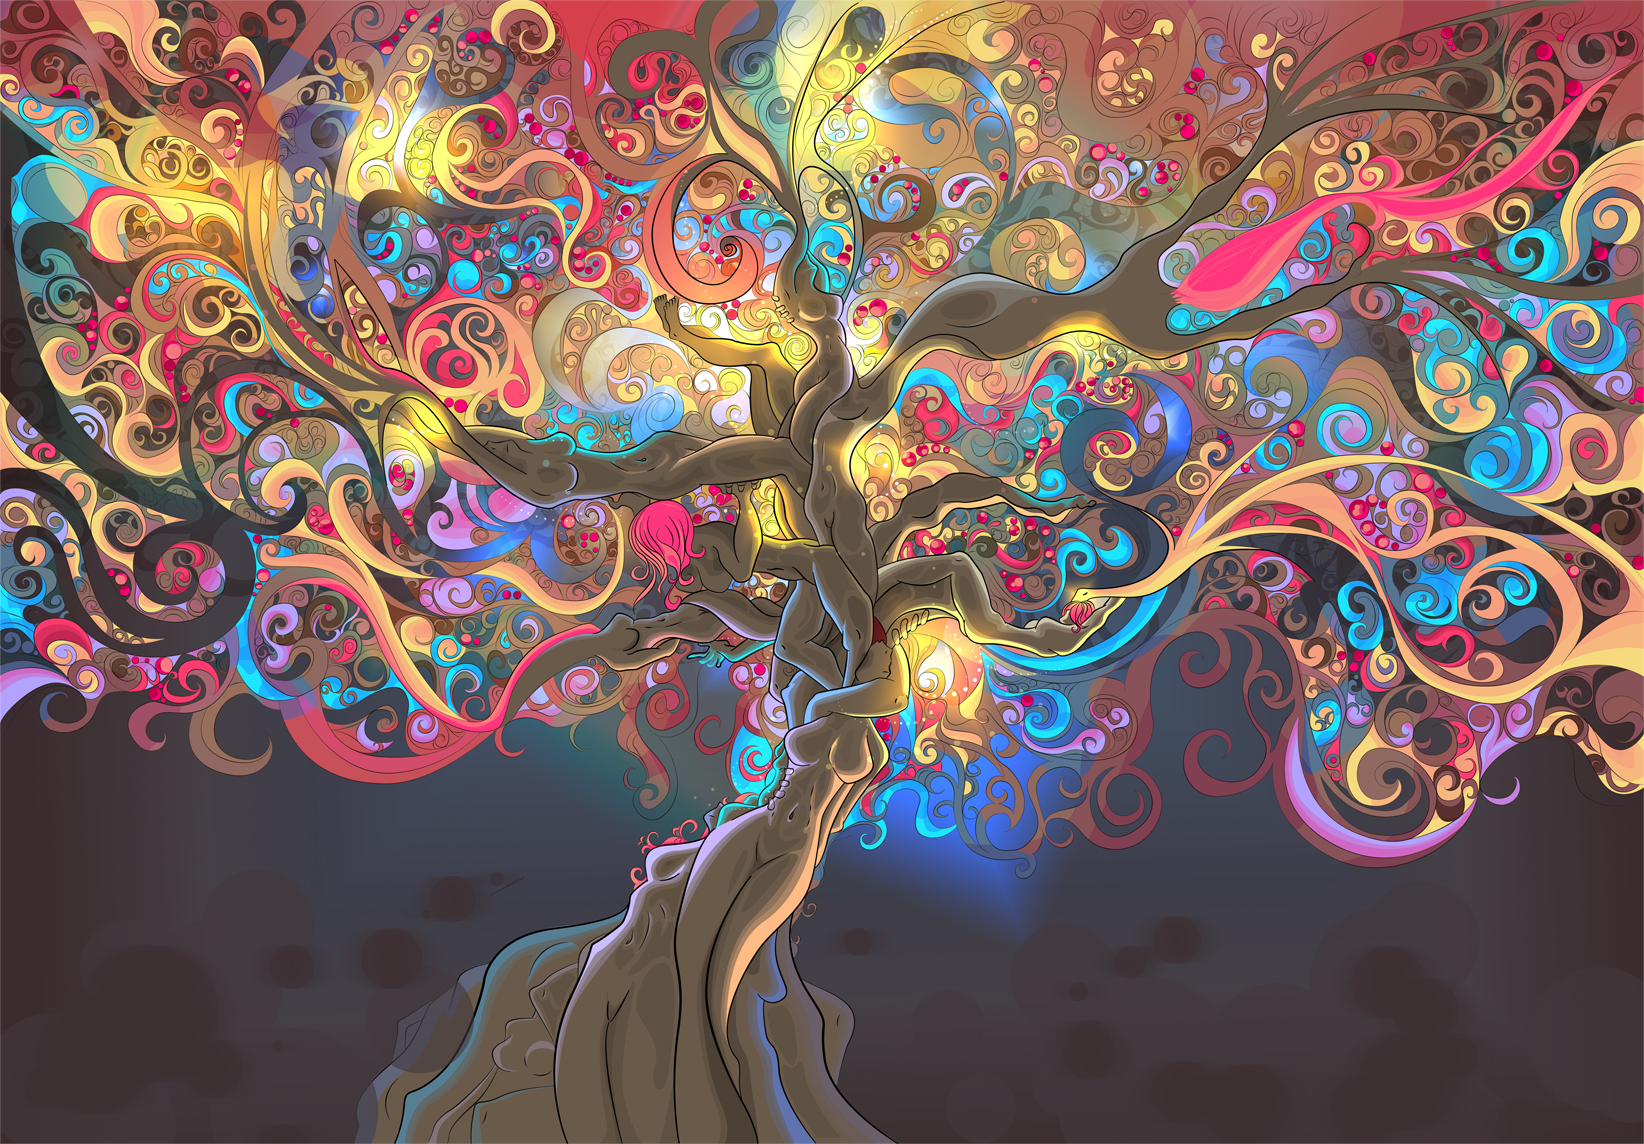 520 Psychedelic HD Wallpapers Backgrounds 1644x1144